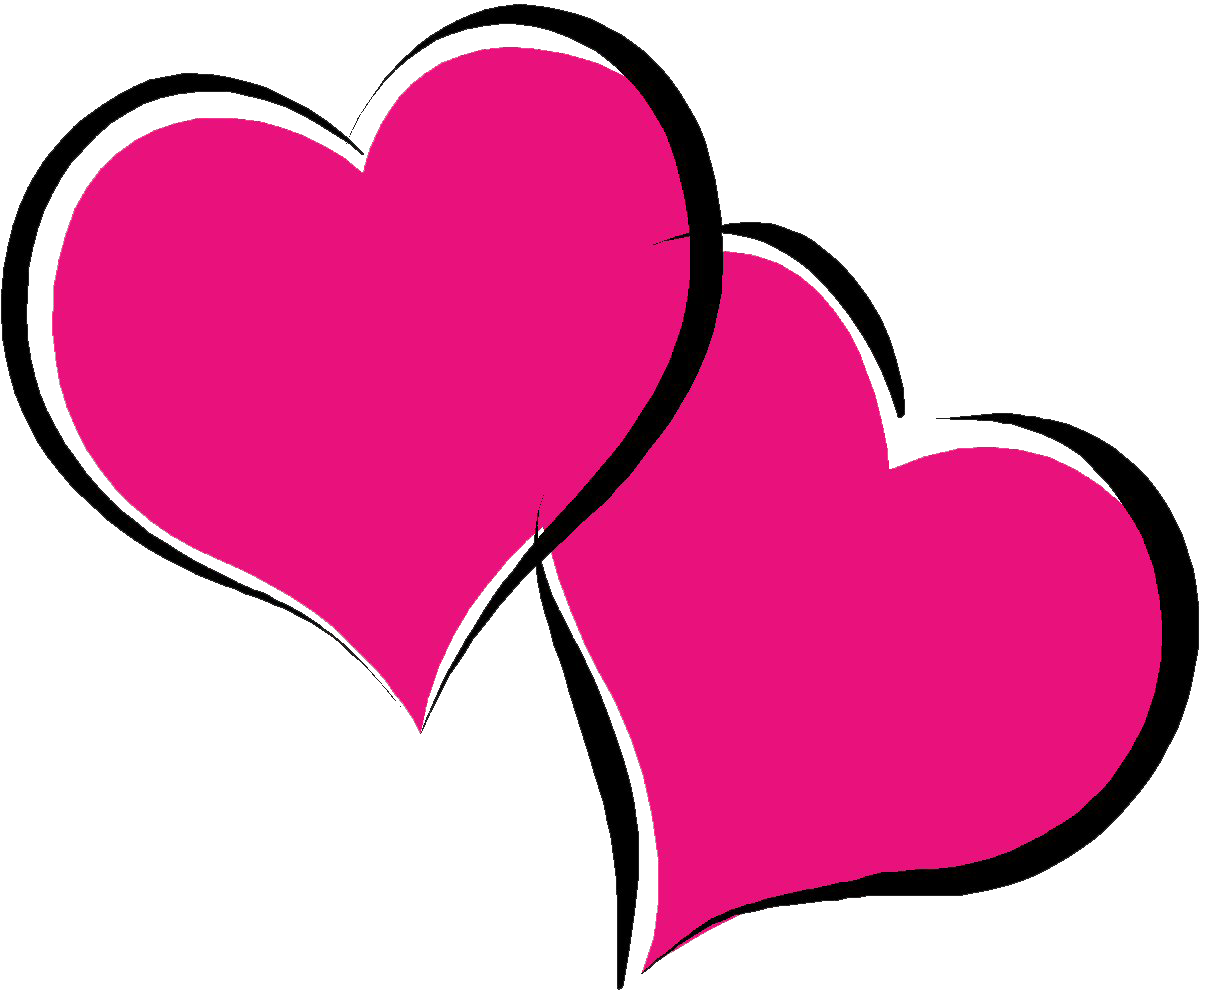 PNG PlusPng.com  - Heart PNG